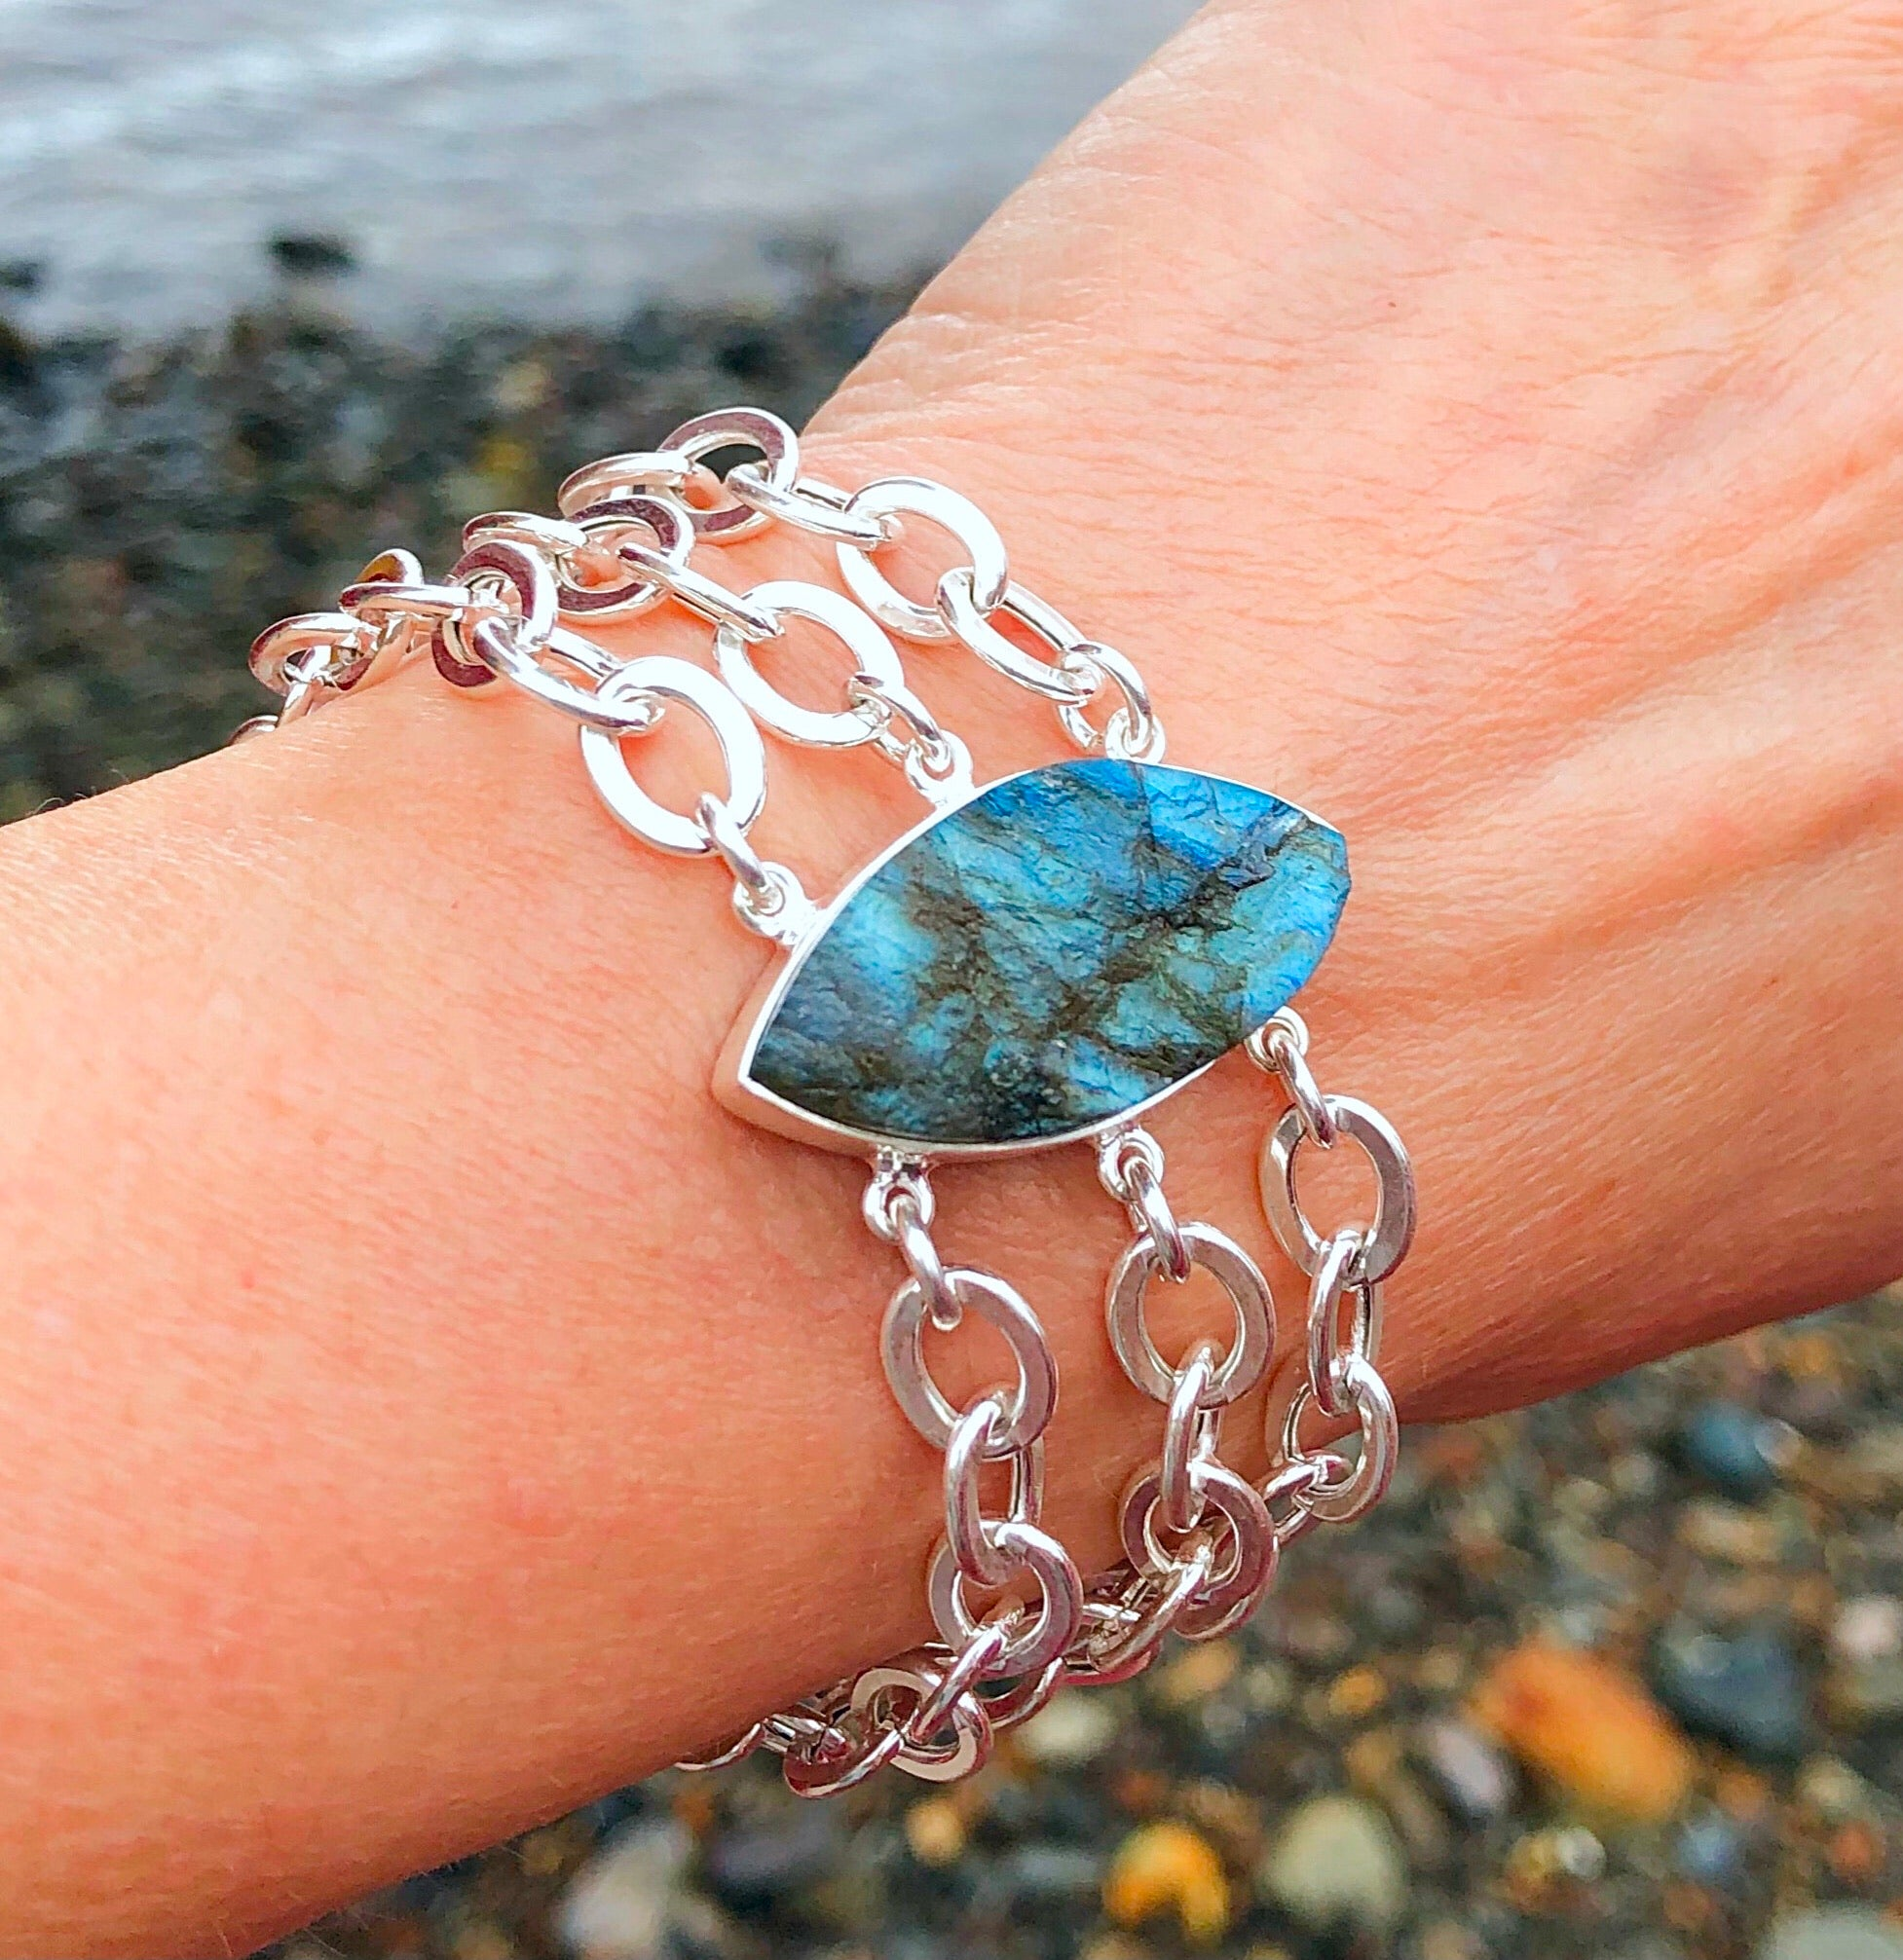 DAWN BRACELET - Elizabeth Burry Design